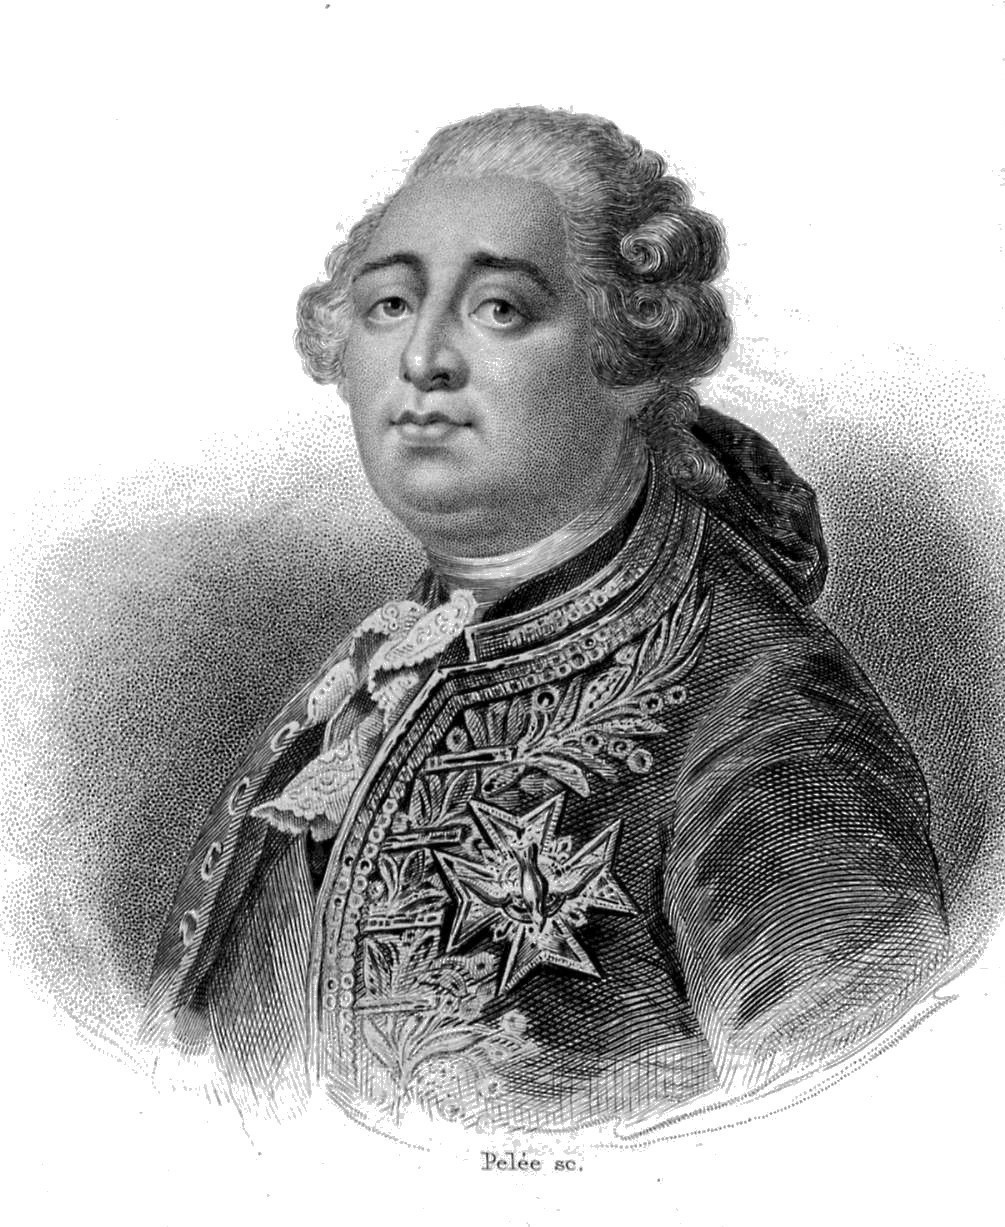 an analysis of reign of king louis philippine of france Wikipedia, Élisabeth of france (Élisabeth philippine marie louis xiv, king of france childhood, marriage, mistresses, palace of versailles, and reign.